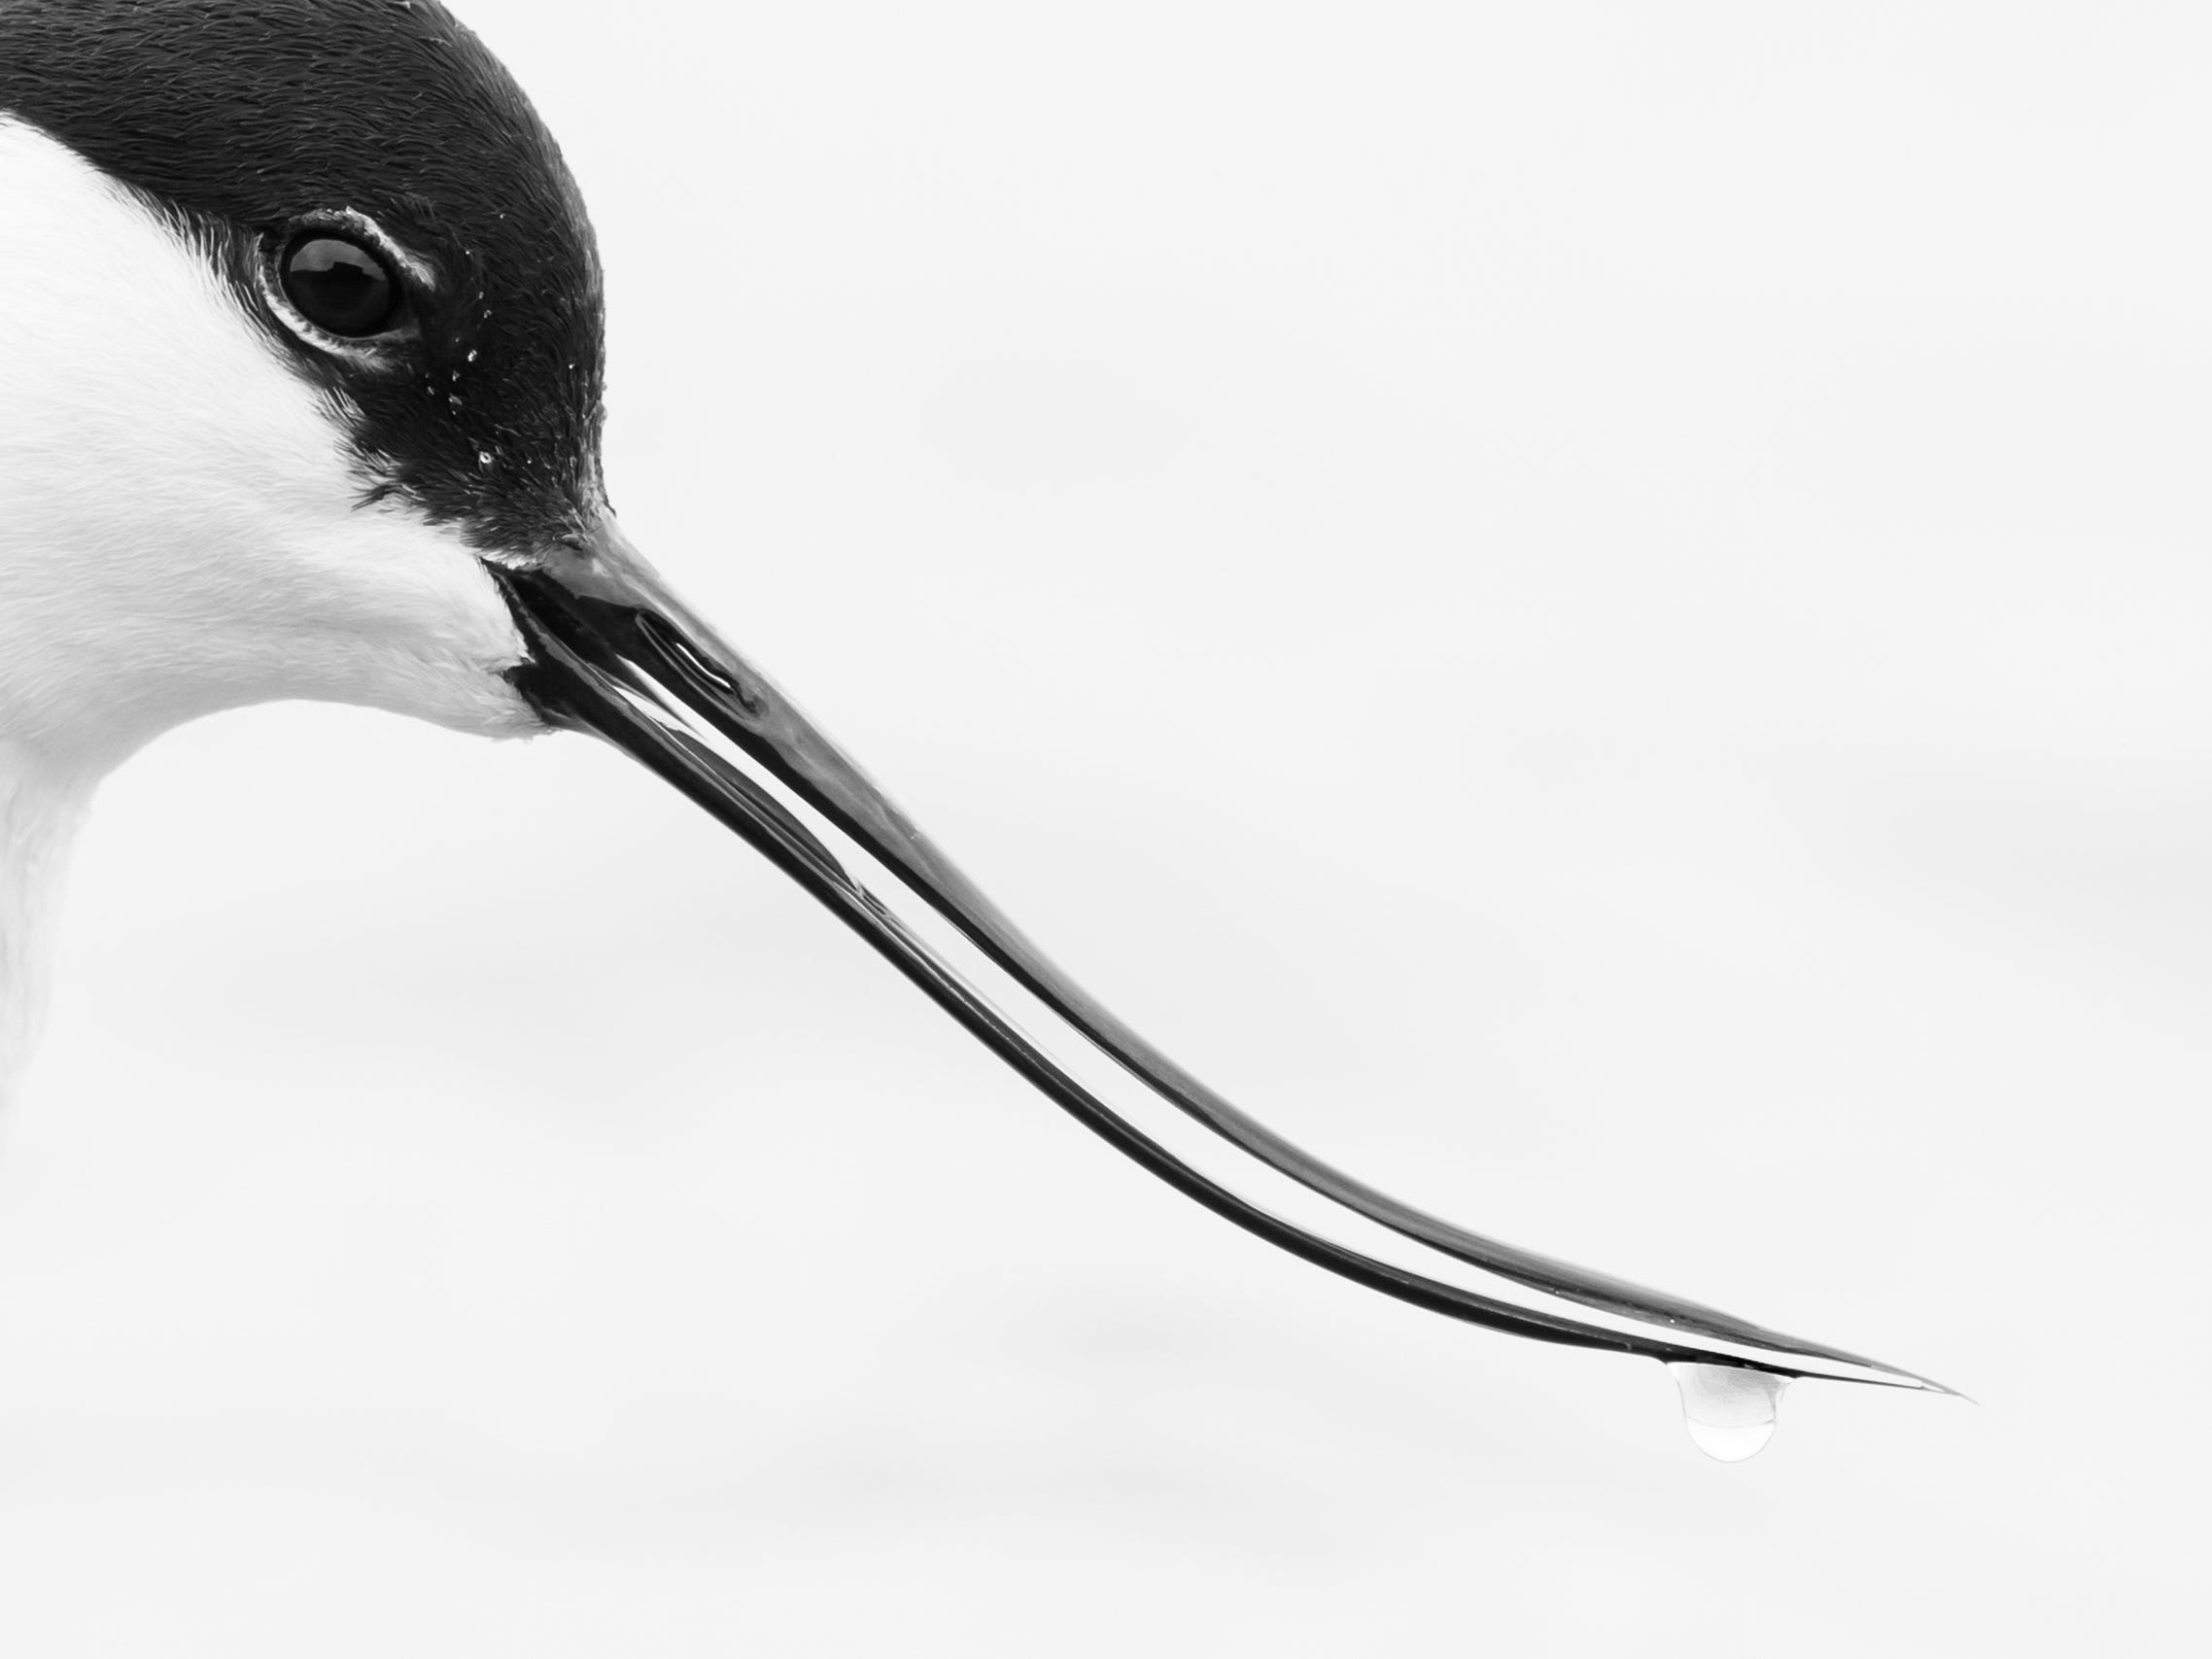 Unique Bill by Rob Blanken, The Netherlands -- The pied avocet has a unique and delicate bill, which it sweeps like a scythe, as it sifts for food in shallow brackish water. This stunning portrait was taken from a hide in the northern province of Friesland in The Netherlands. -- Nikon D500 + AF-S Nikkor 200-500mm f1:5.6 E ED lens at 250mm; 1/200 sec at f6 (+ 2 2/3); ISO 800.